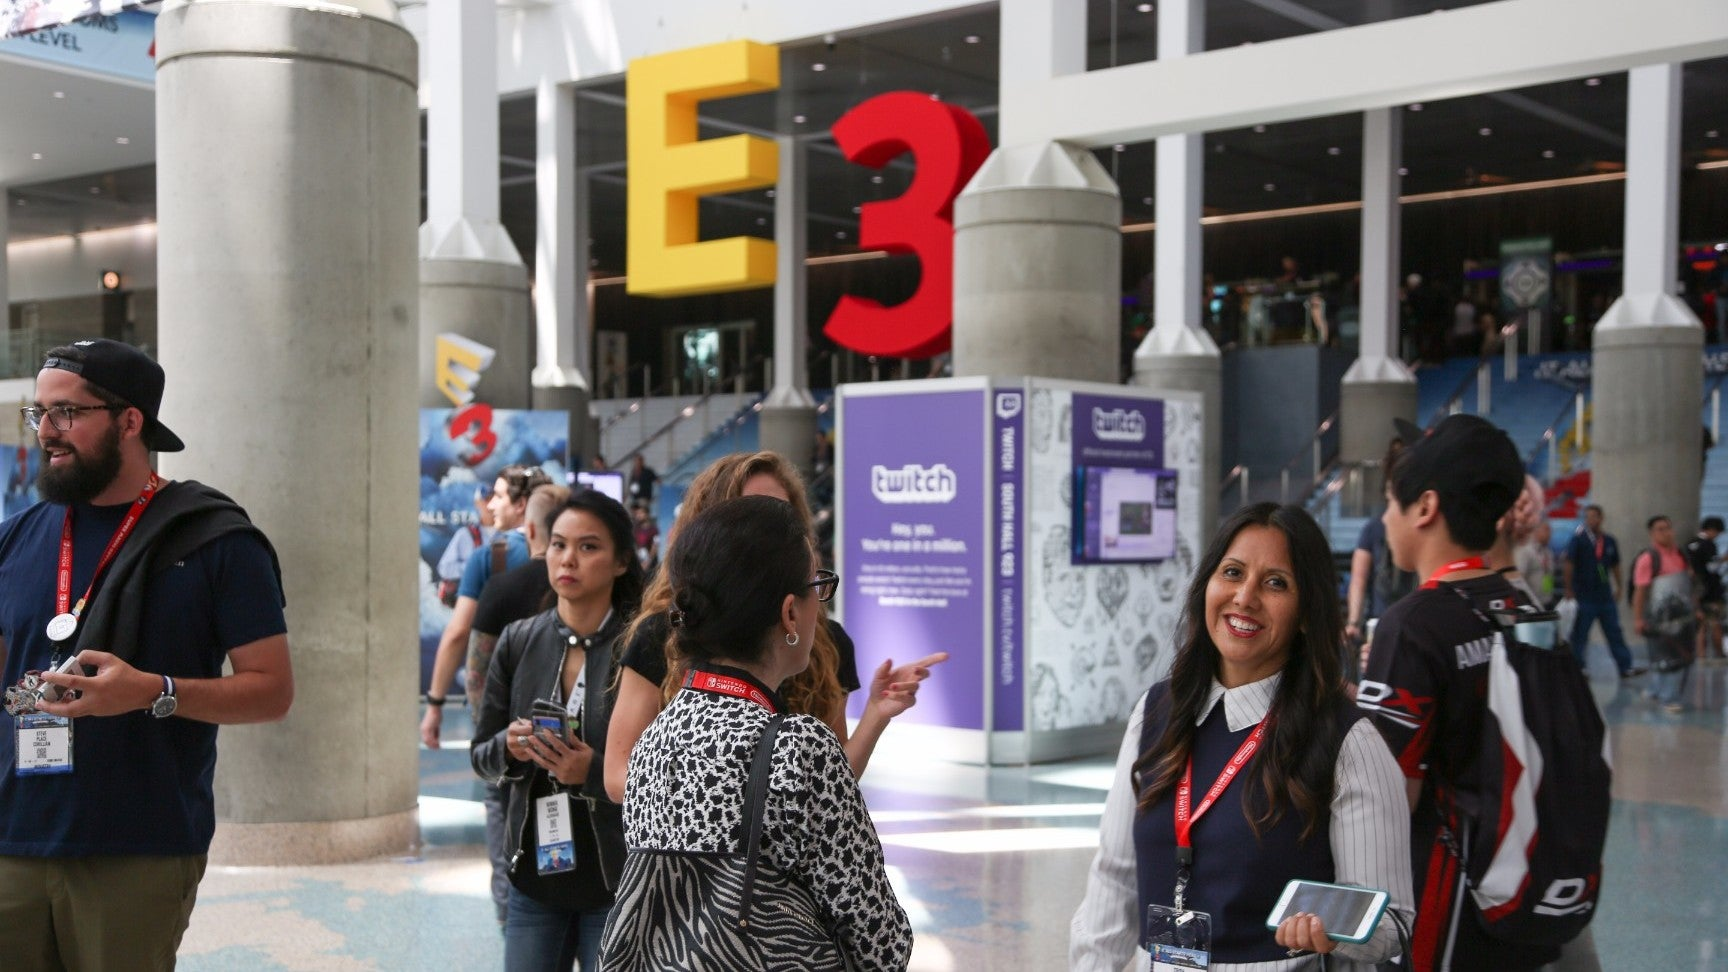 The E3 2018 Press Conference Schedule